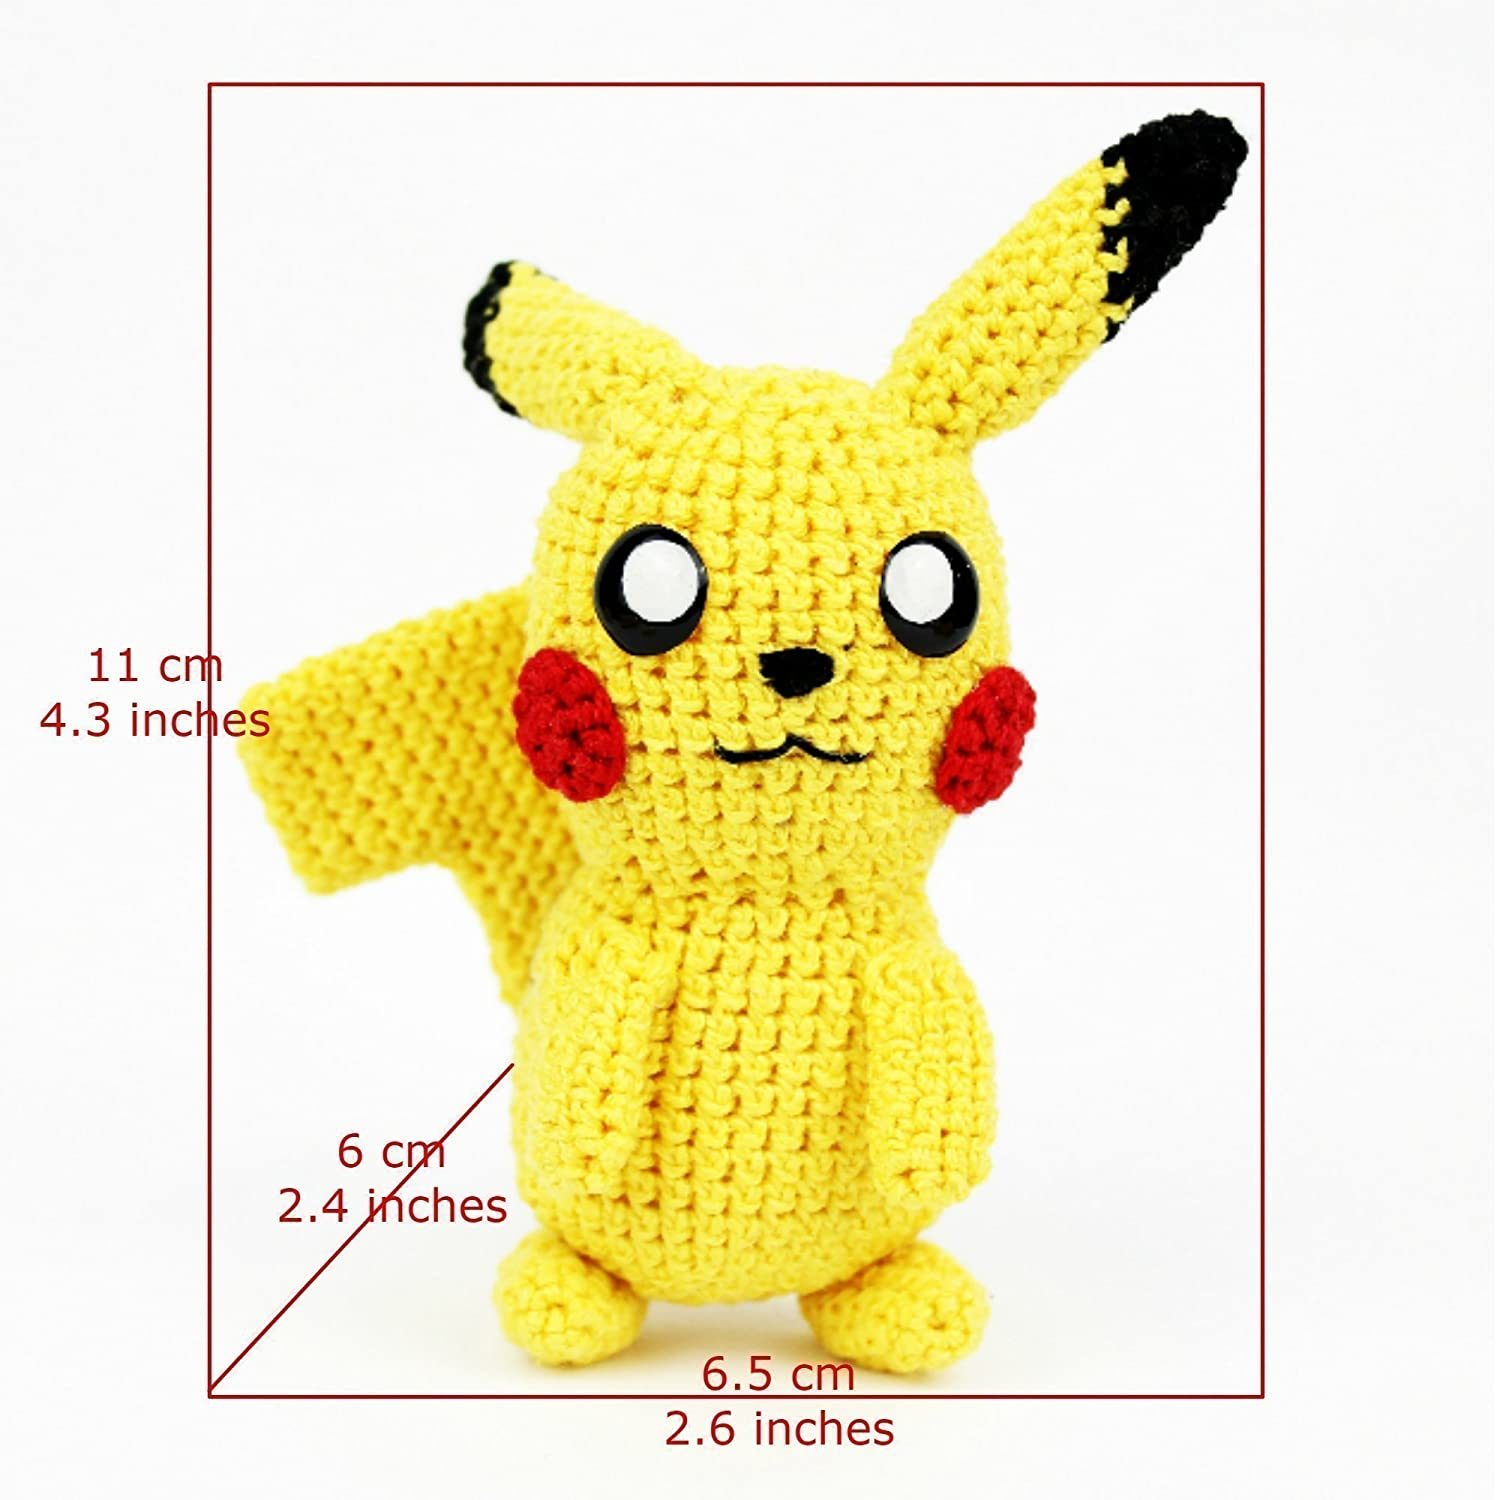 DIY Amigurumi Pikachu Crocheted amigurumi Pokémon – Amigurumi Patterns | 1500x1500